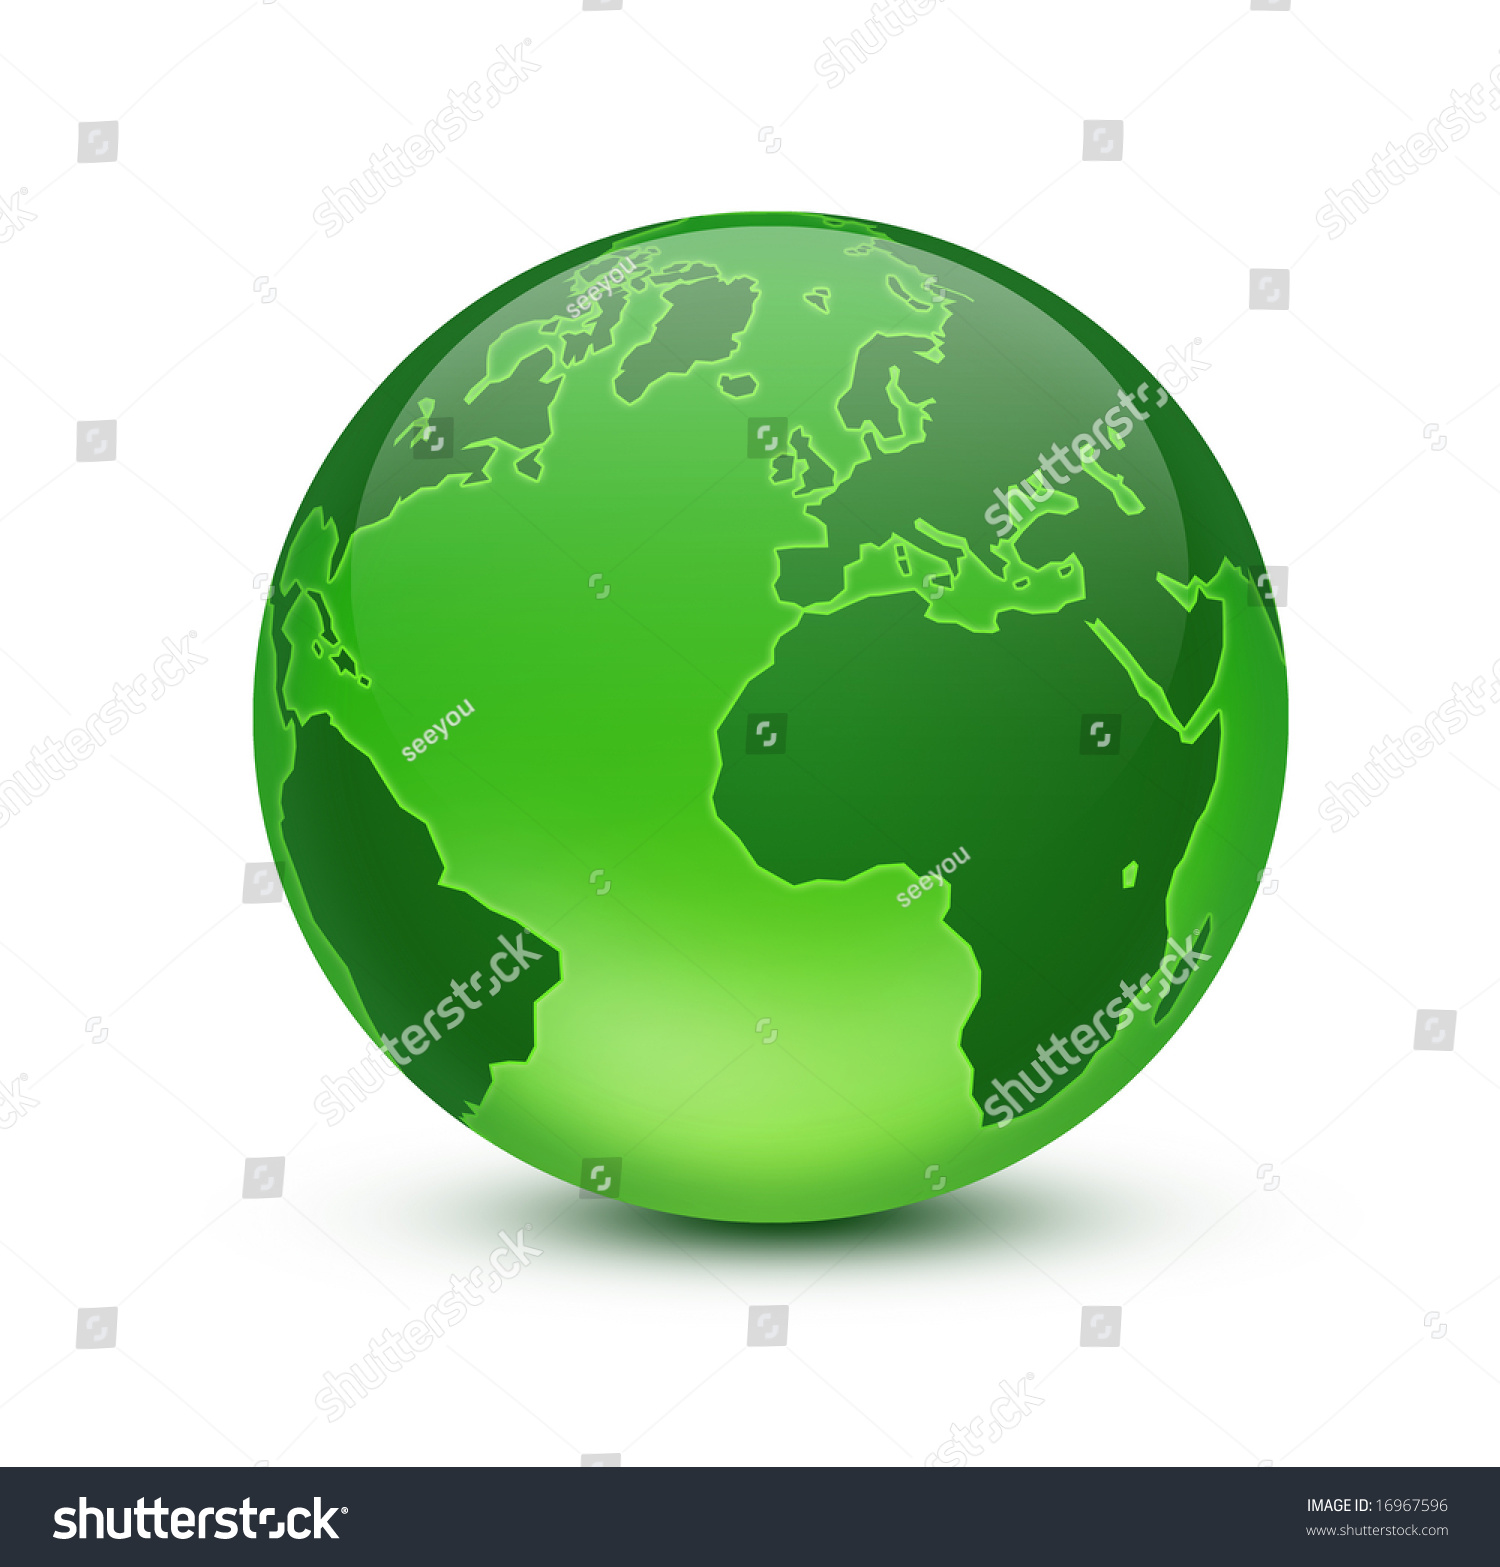 Green Earth Stock Photo 16967596 : Shutterstock